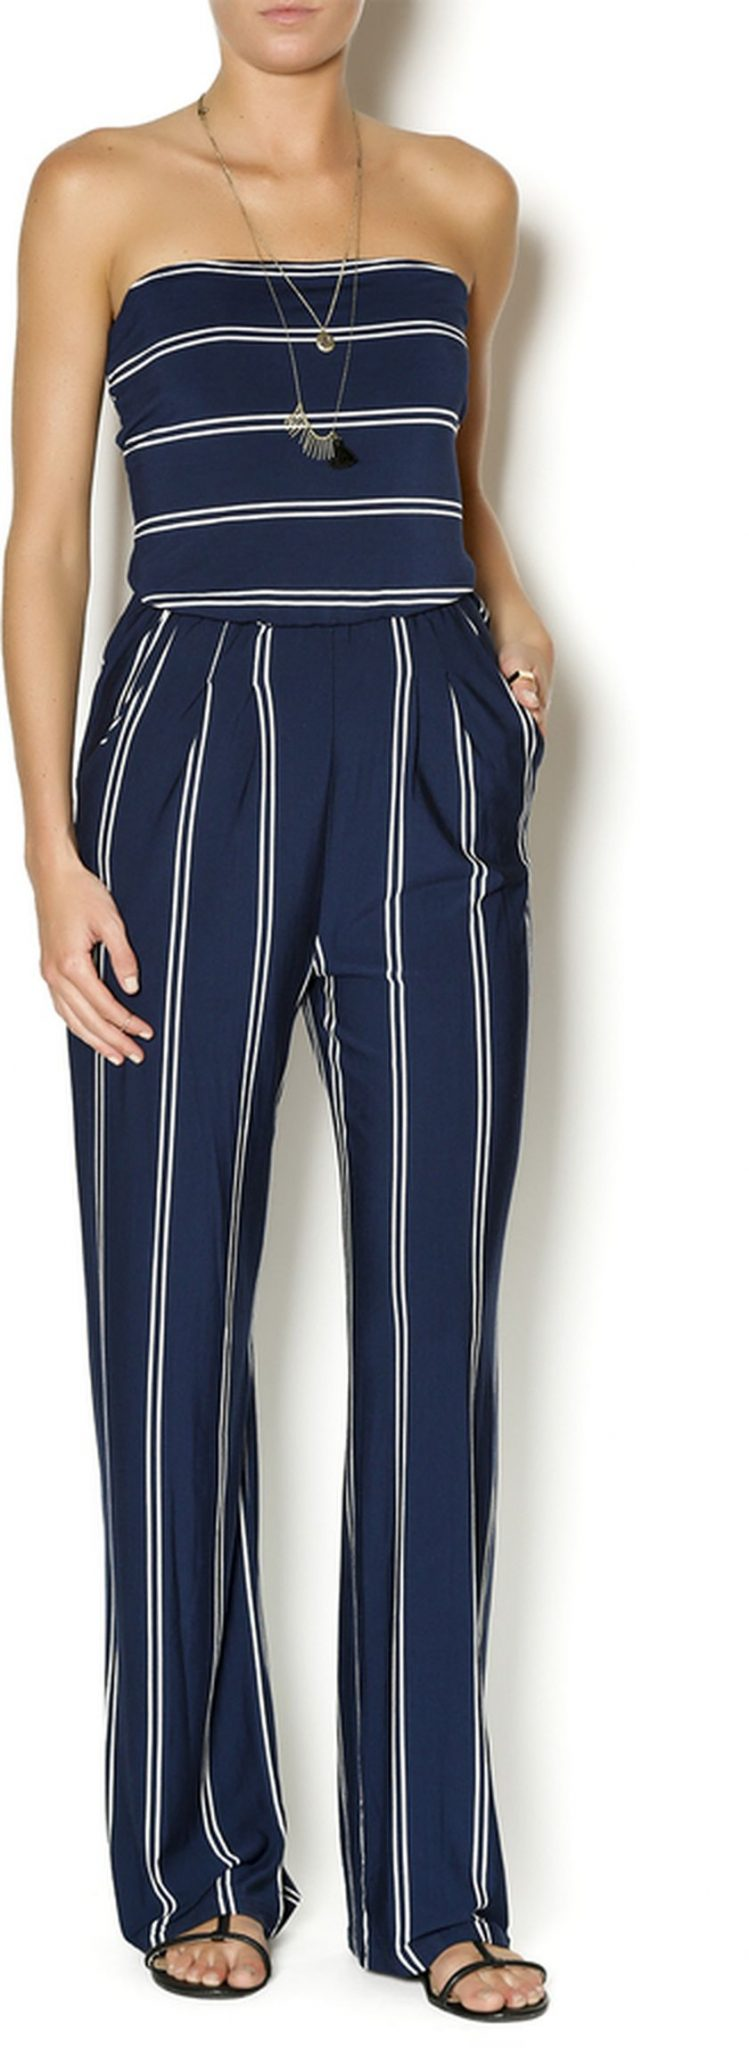 Jumpsuits strapless outfit 87